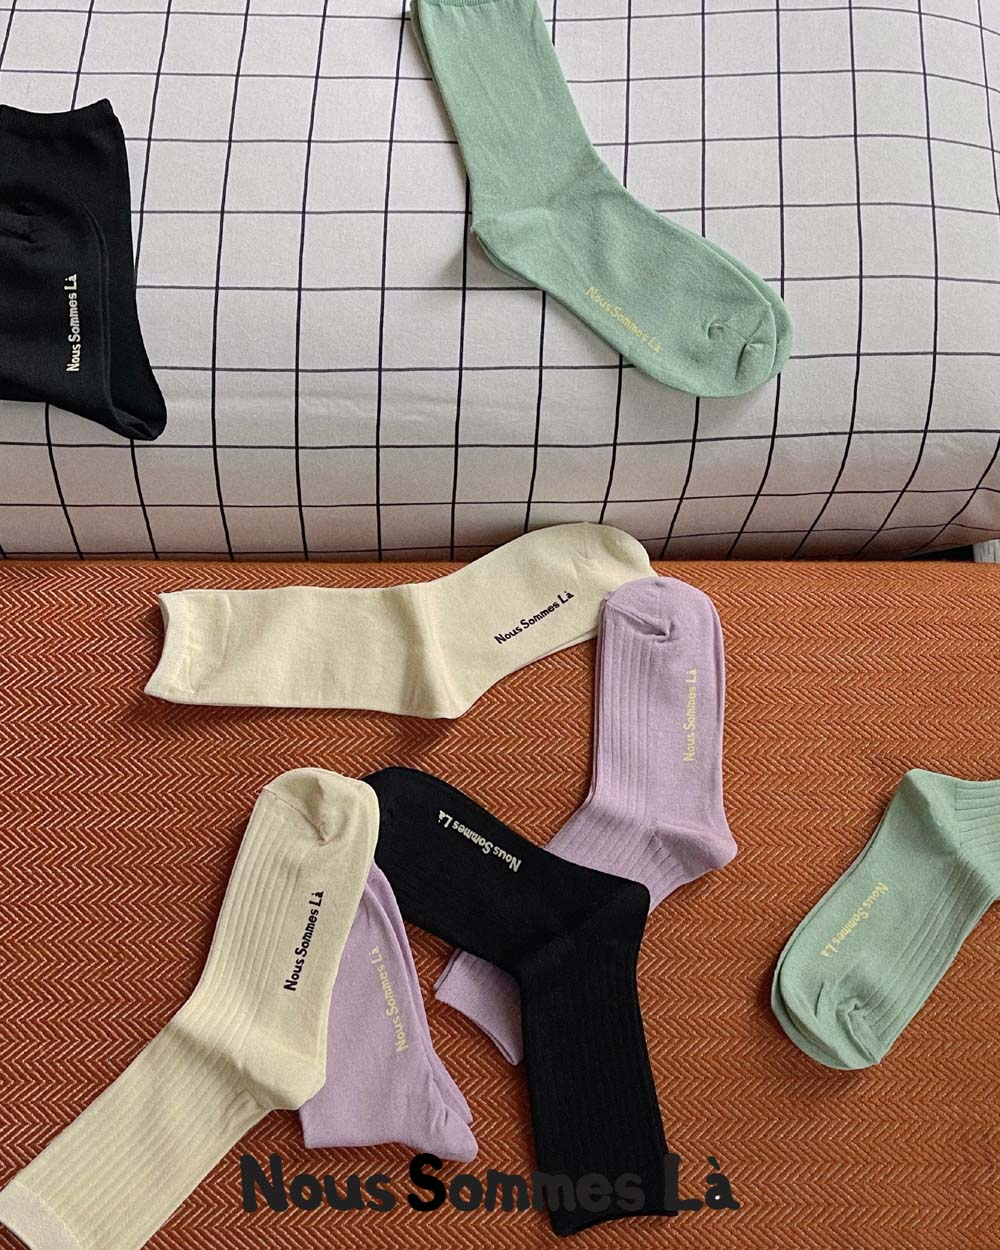 Chaussettes (2PACK)